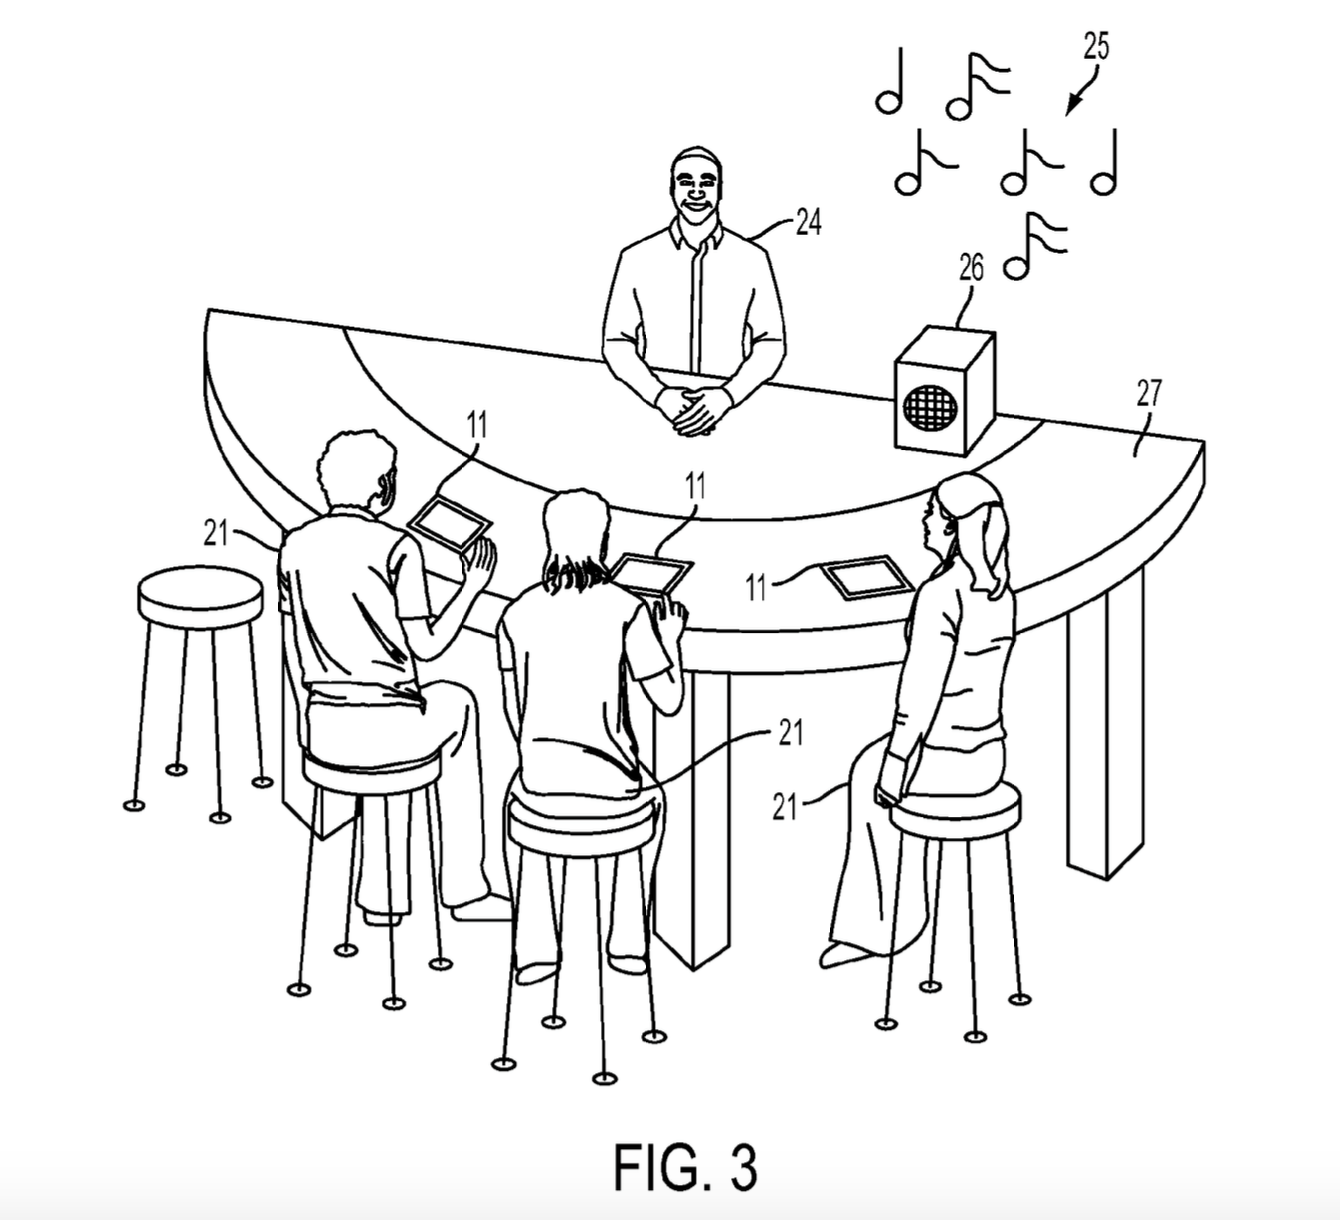 A screenshot from Apple's patent application demonstrates what a noisy environment might look like.